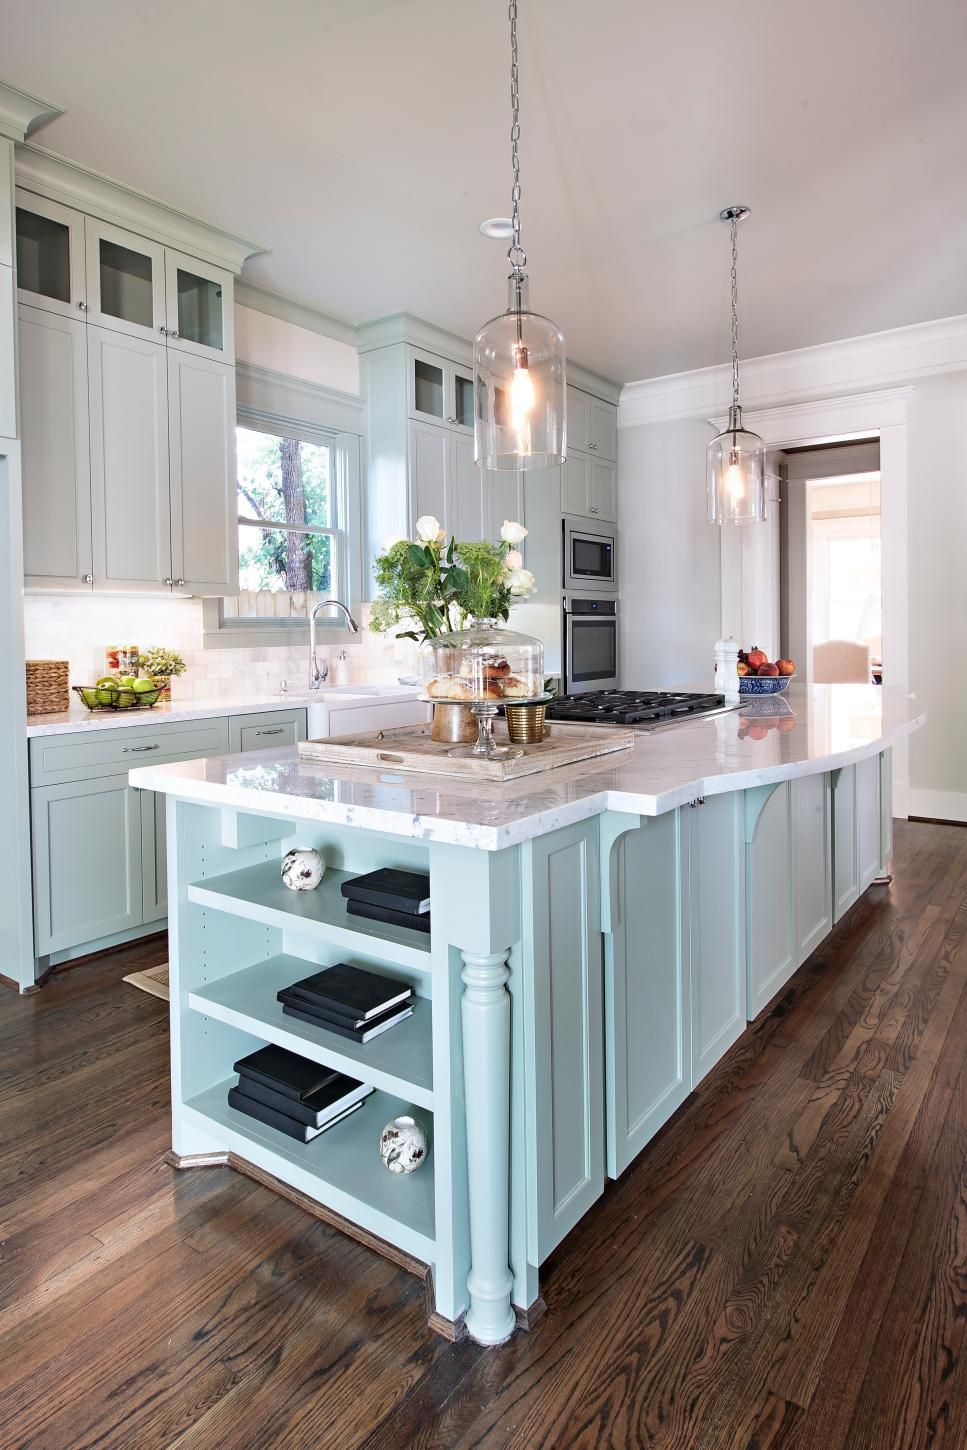 Craftsman Details Help New-Construction Home Fit Into Historic ...